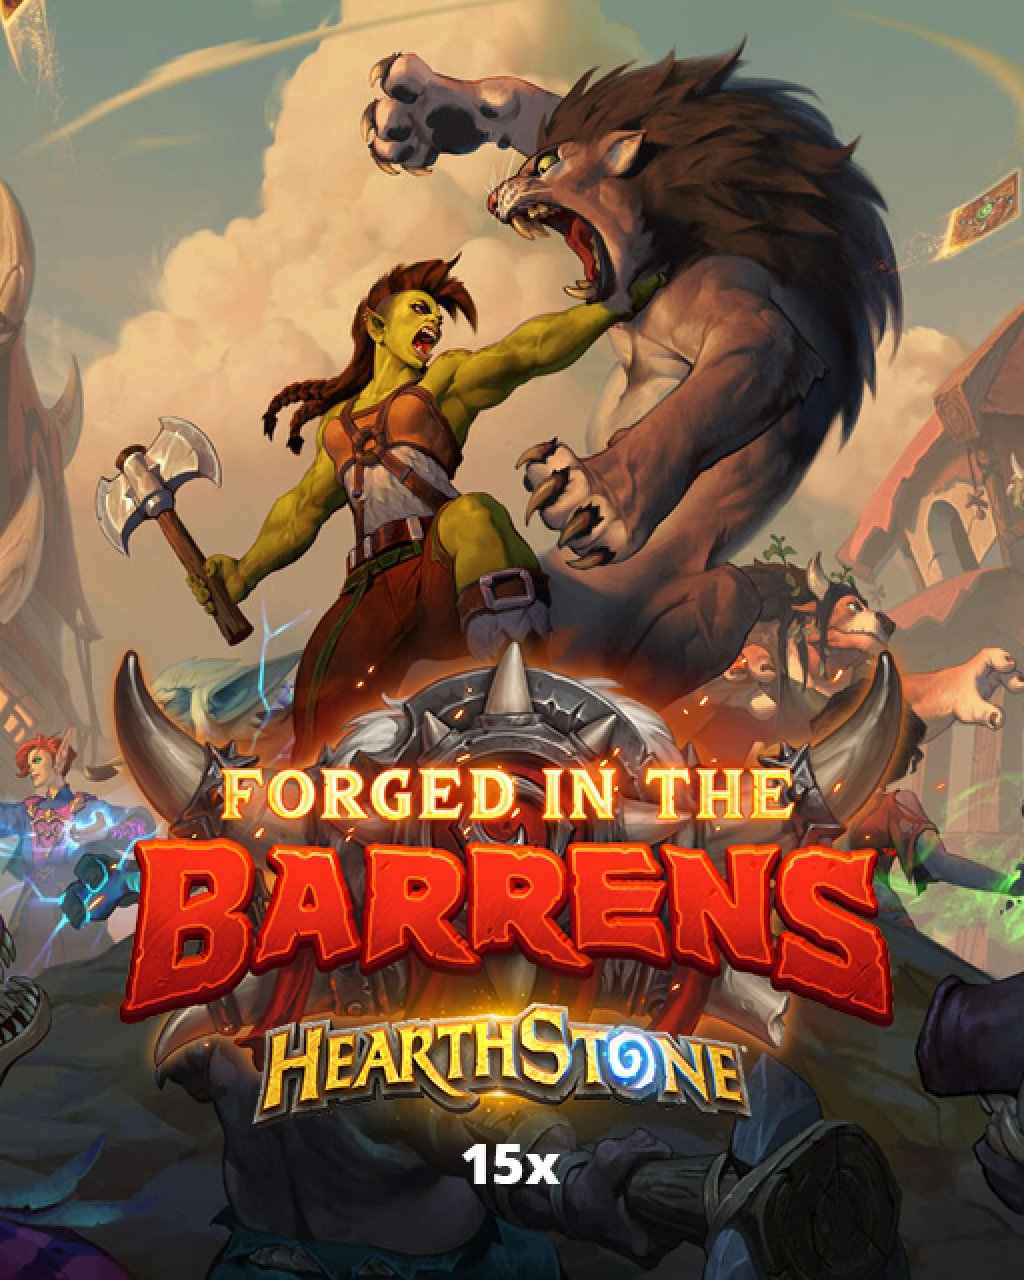 15x Hearthstone Forged in the Barrens